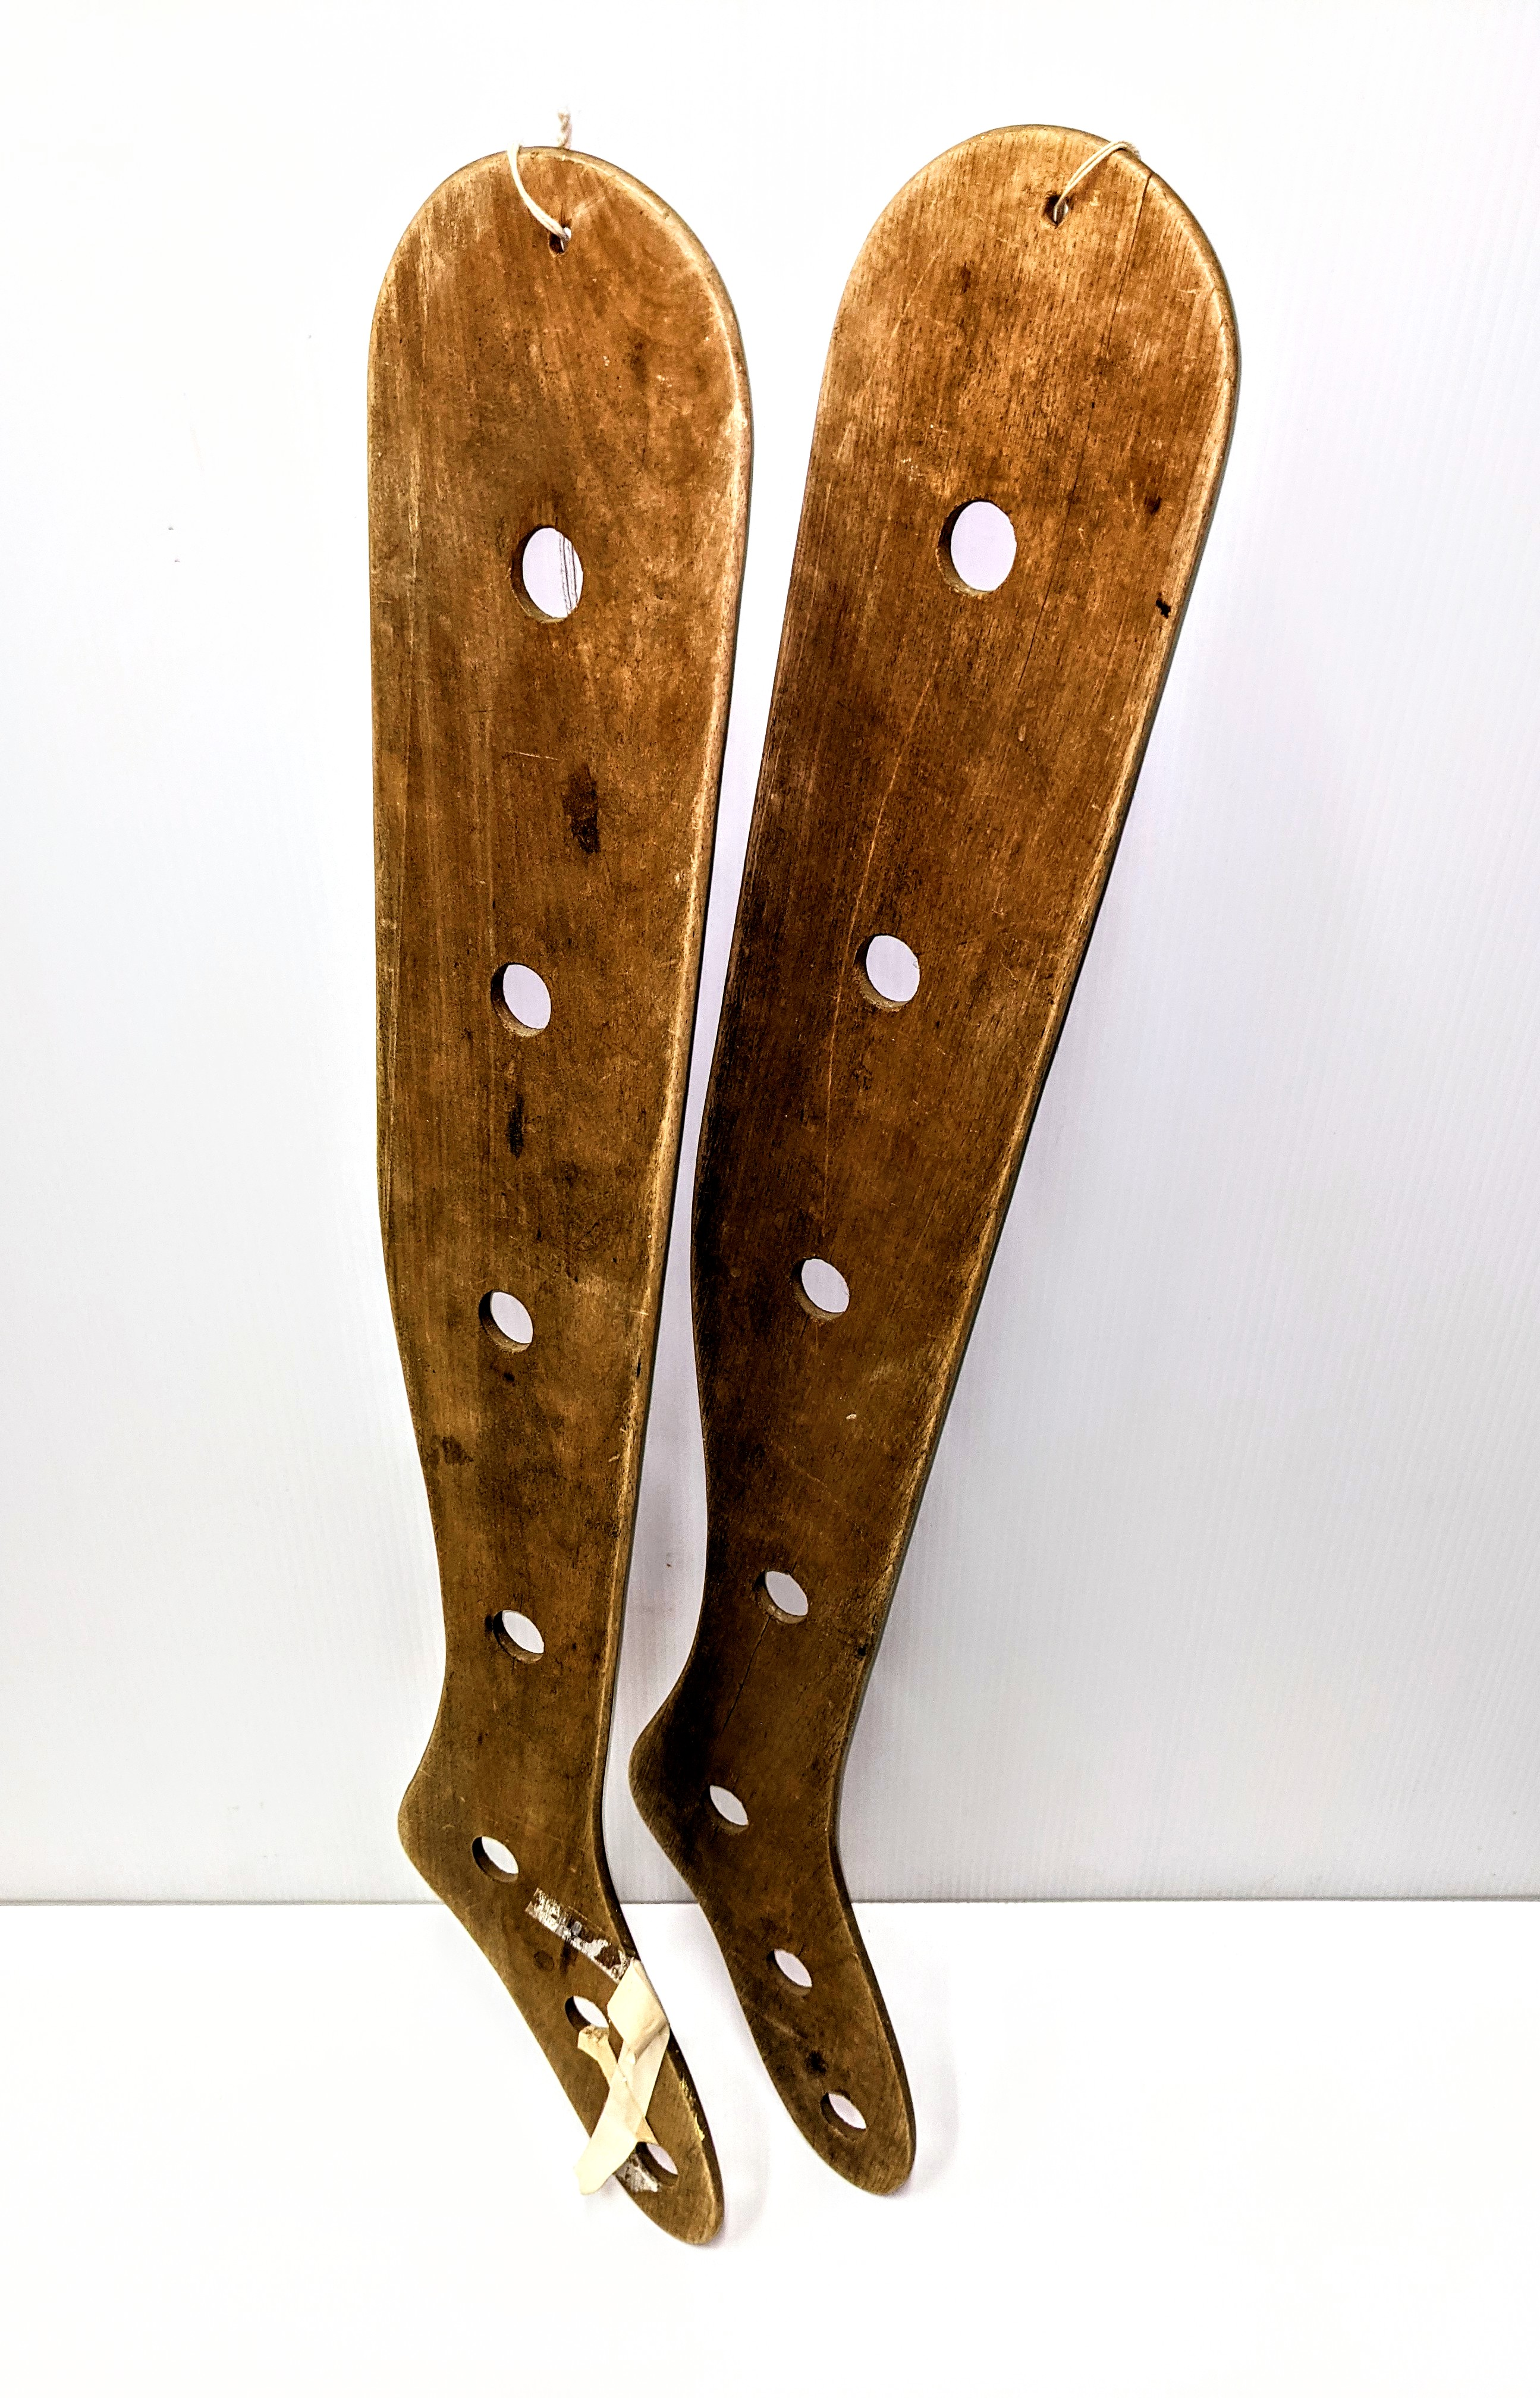 An uncommon sight in todays world of 'fast fashion', these sock stretchers were a household item in the early 20th century. Standing at 3ft tall, these particular stretchers would prevent knee high wool socks and stockings from shrinking after washing. The holes in the middle allowed airflow for drying and the contoured shape ensured the socks would maintain an excellent fit.  22/03/2021 998.01.01.1+2 / Newman, Jack & Pearl